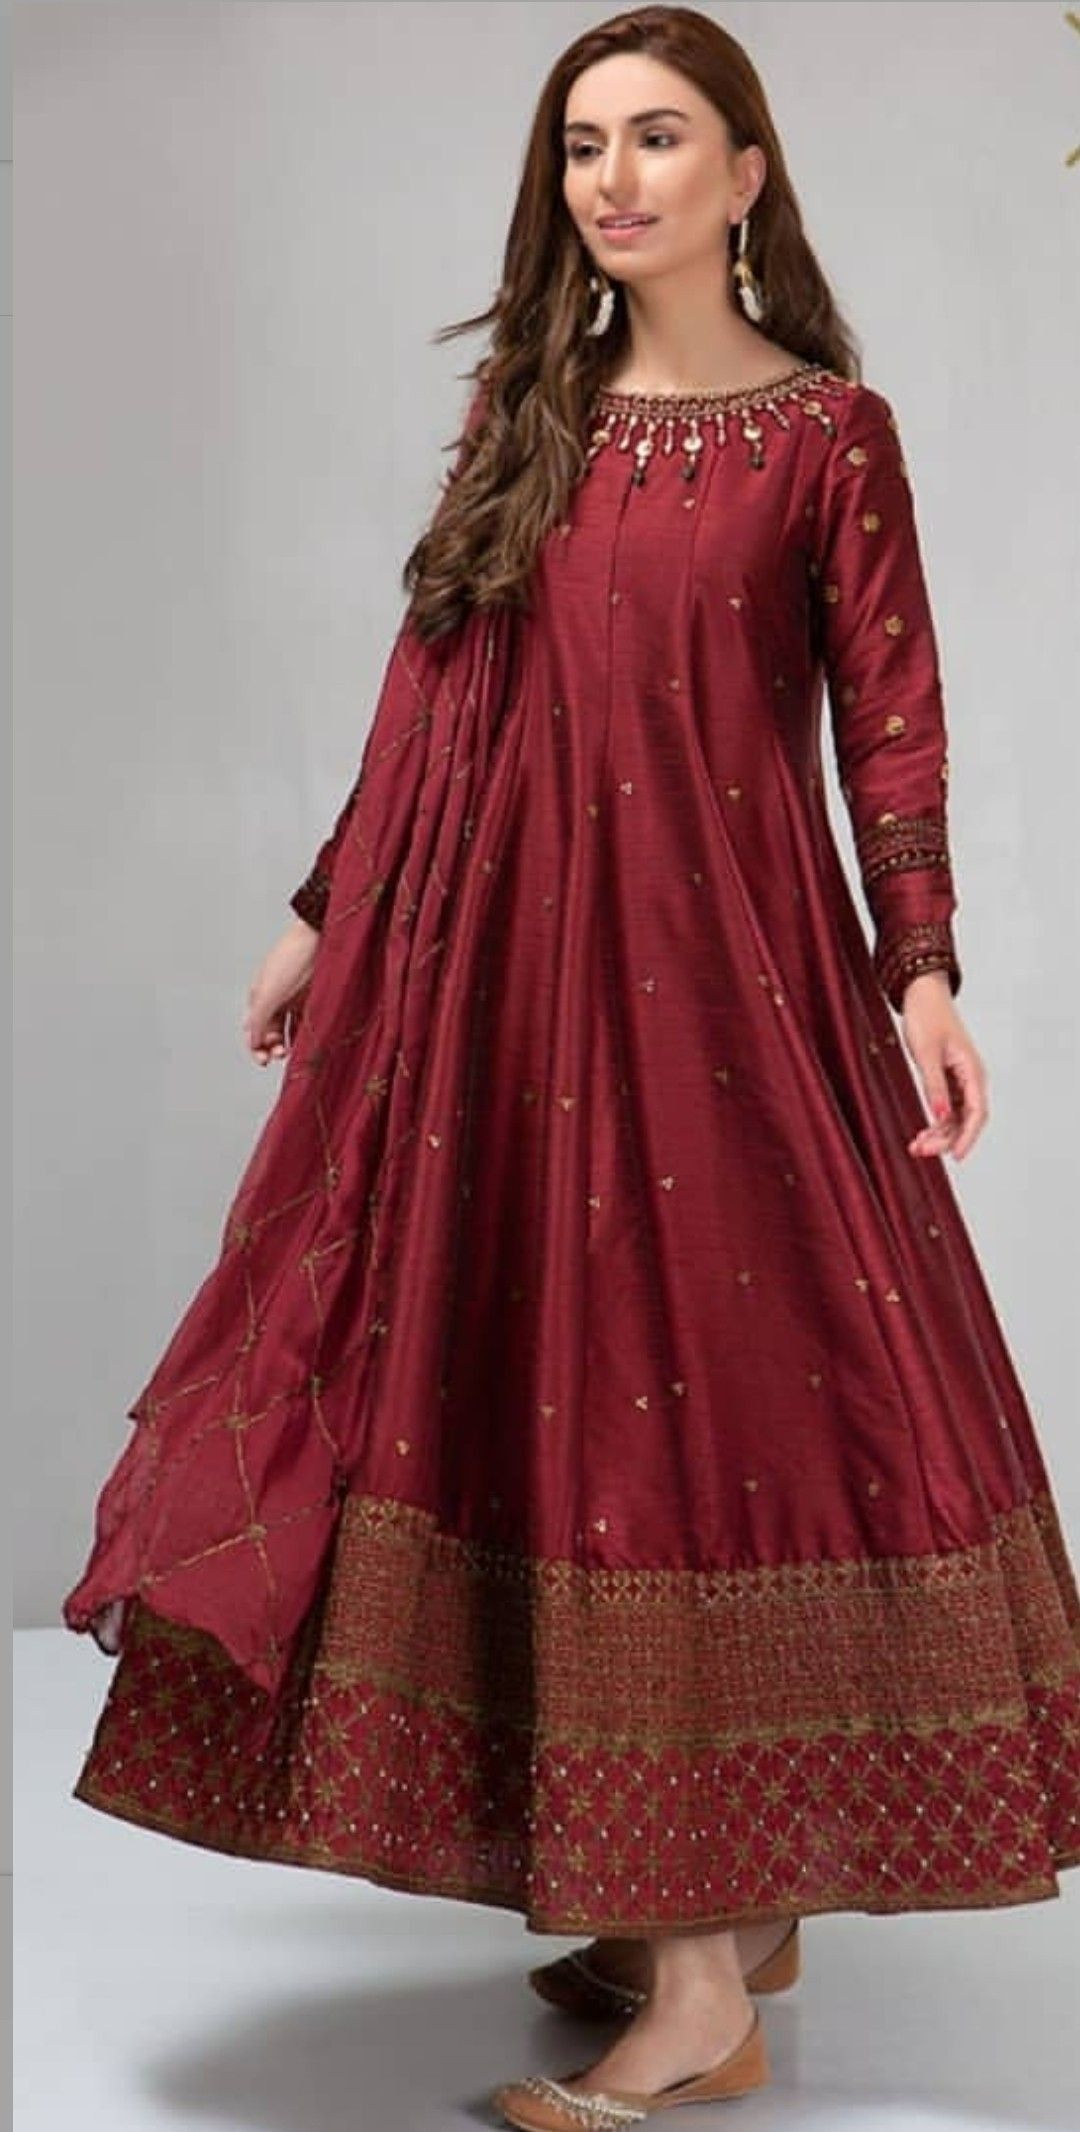 pinhumaira sohail on dresses | pakistani dresses online